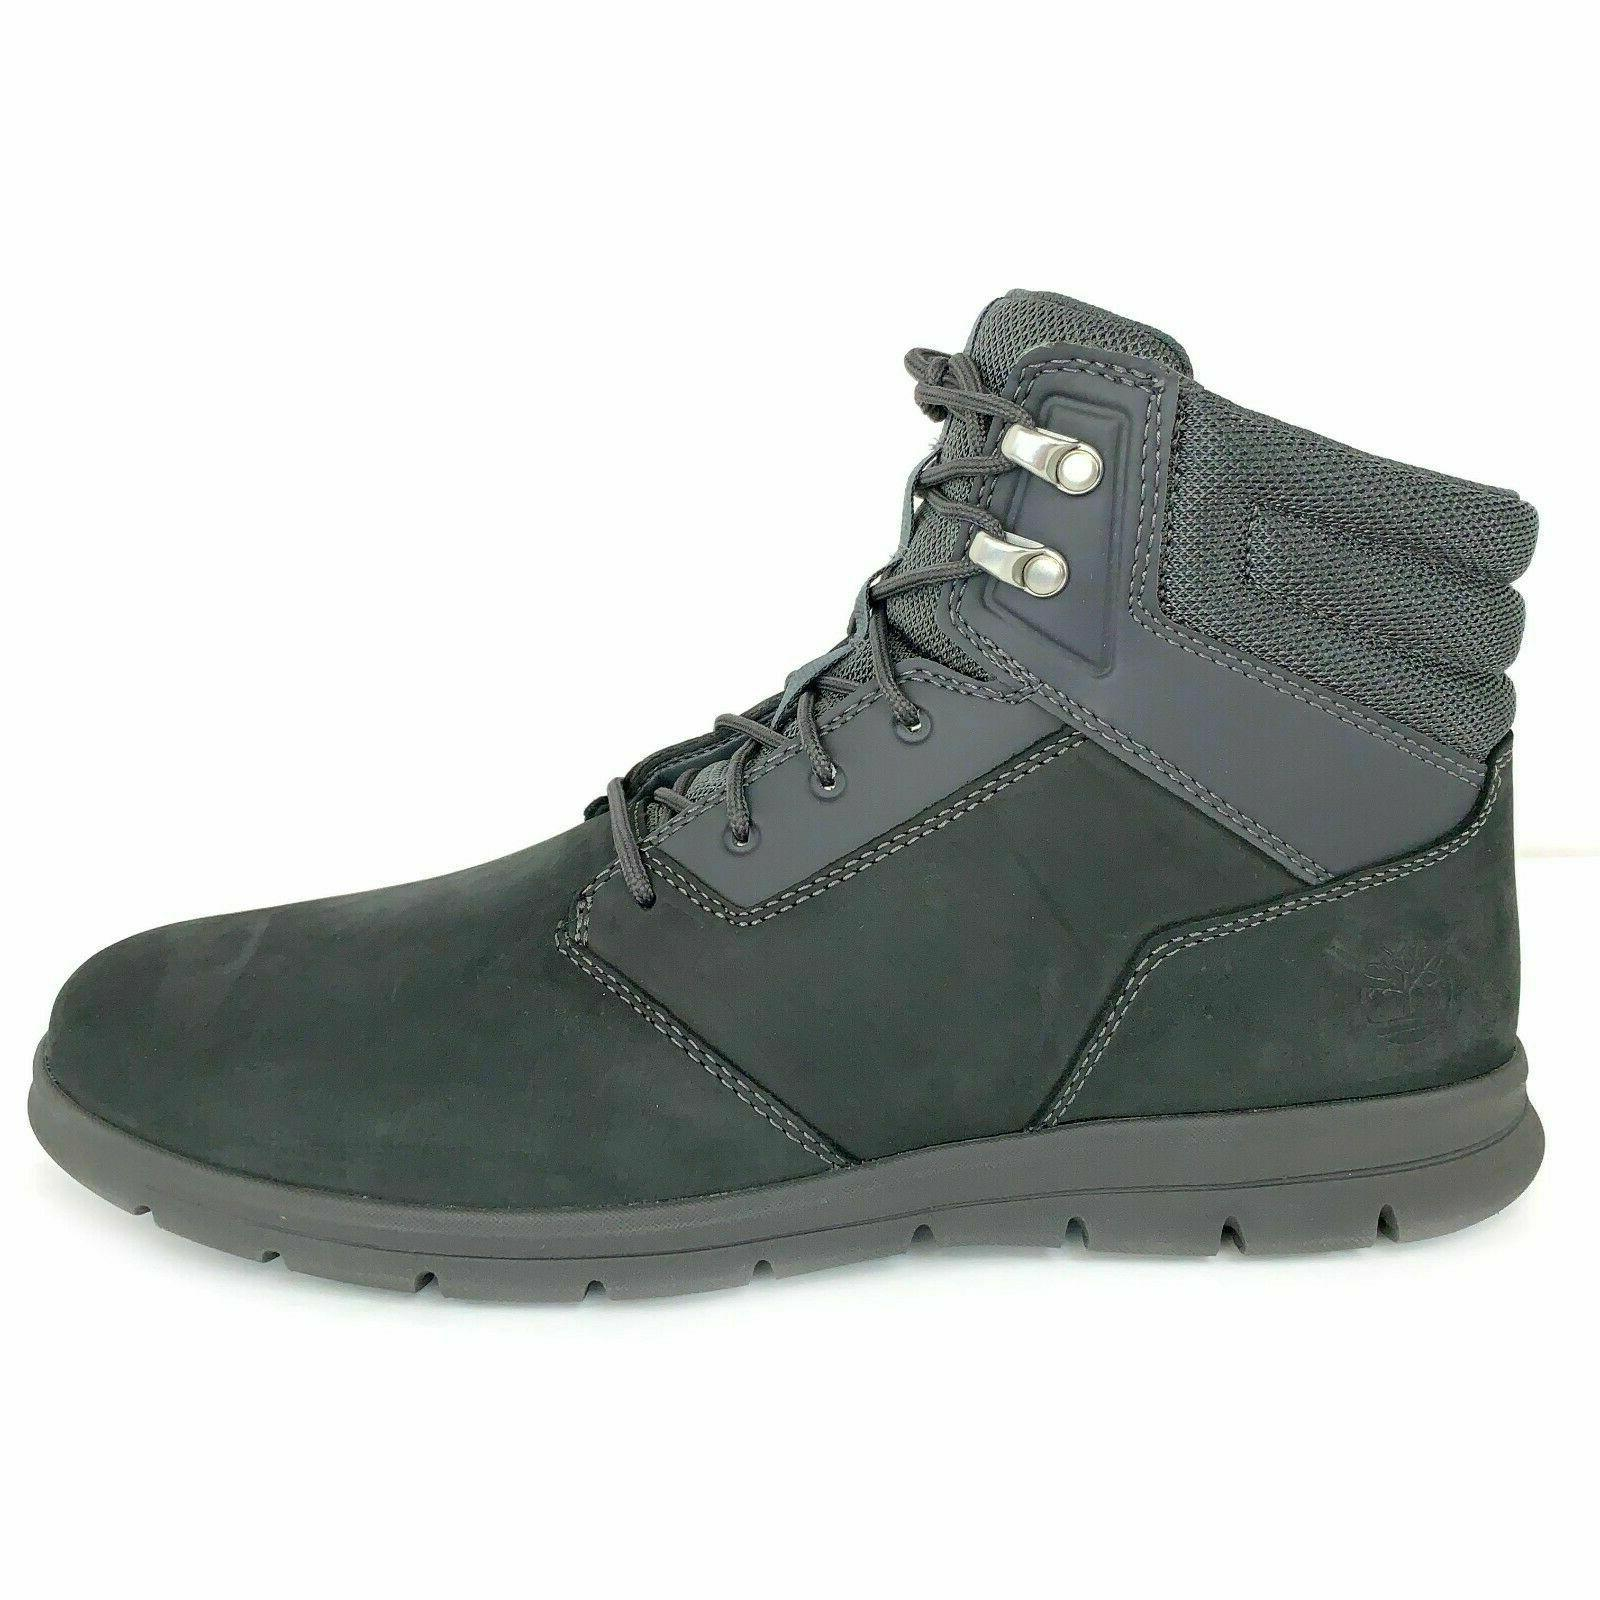 Timberland Graydon Sneakerboot A1OEL Men's Dark Grey Hiking